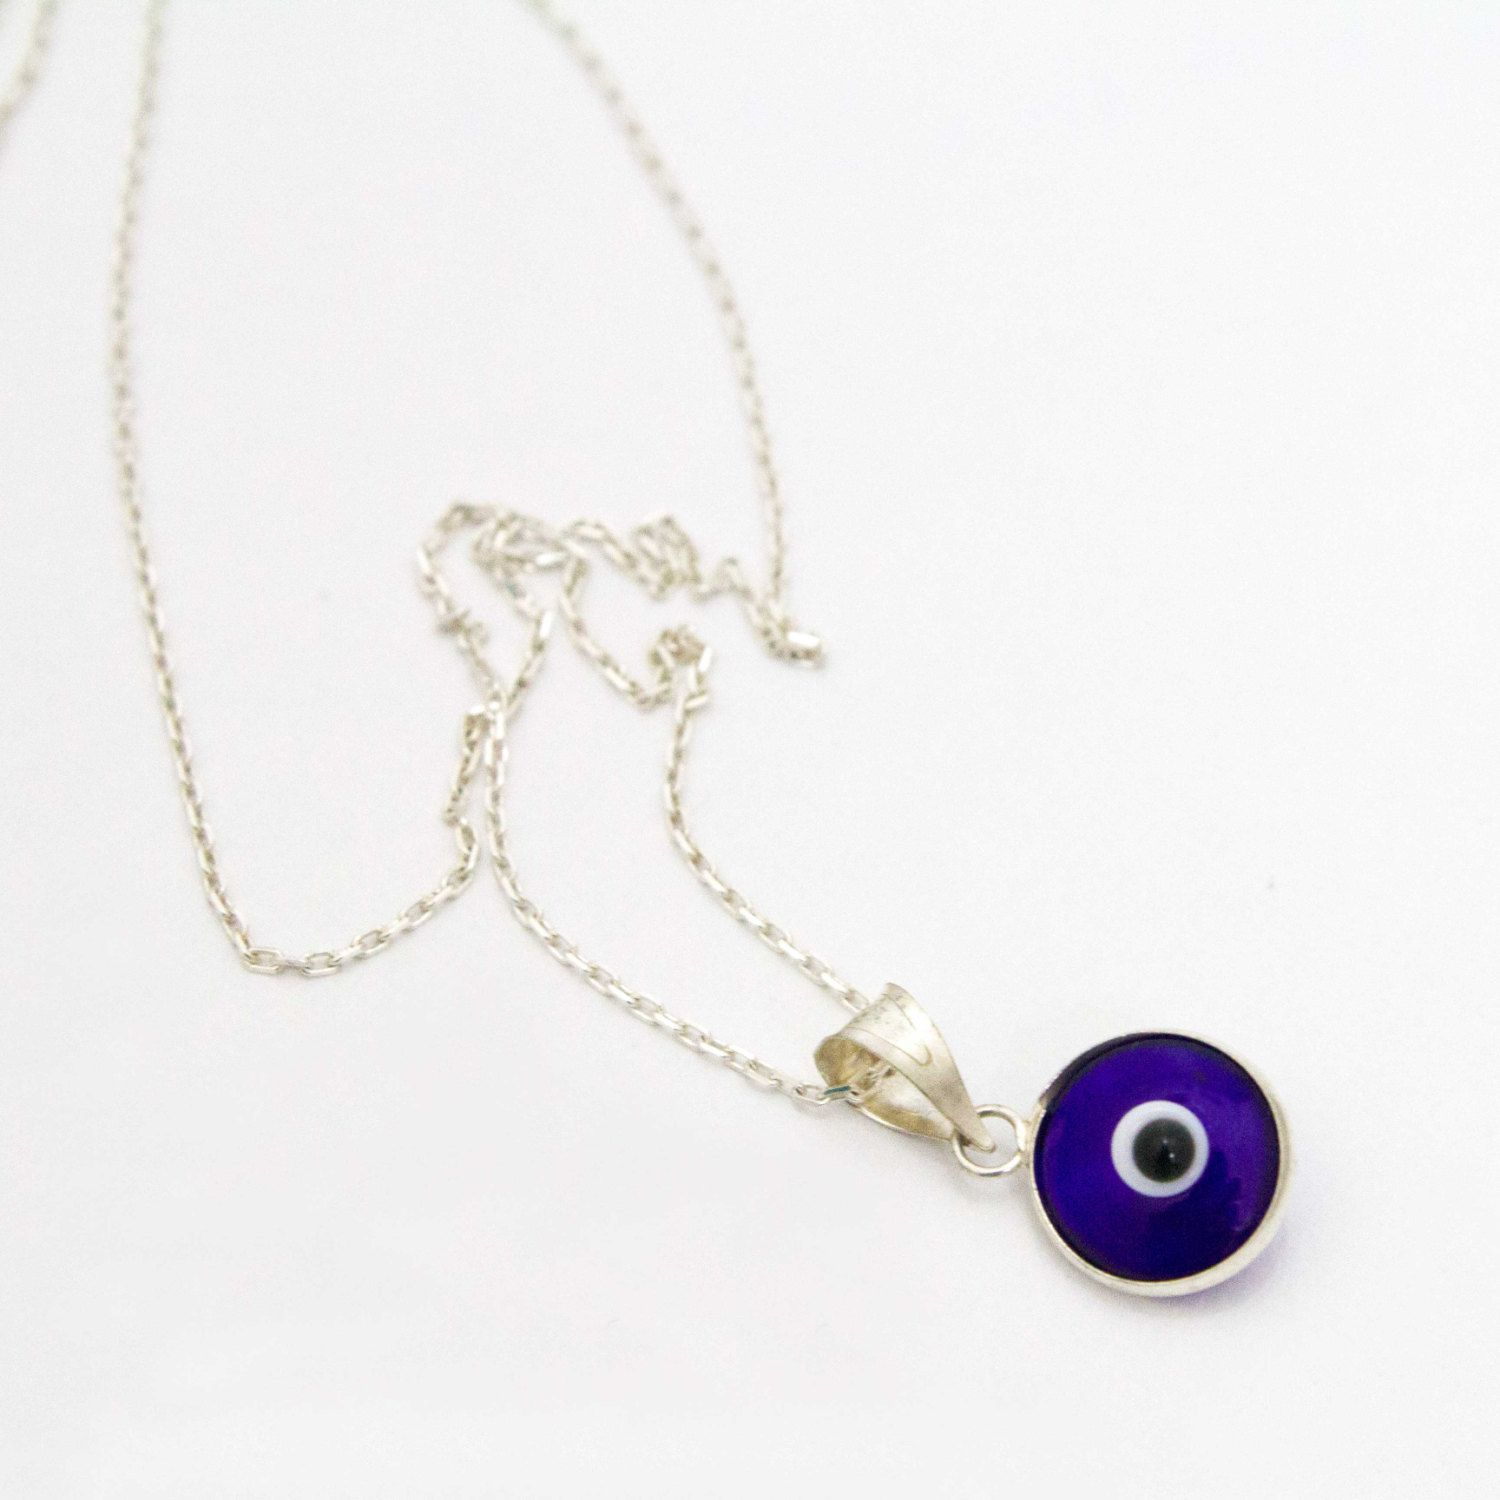 Silver Evil Eye Necklace | Evil Eye Jewelry, Protection Jewelry, Blue Evil Eye, Silver Evil Eye Jewelry, Turkish Evil Eye, Good Luck by Dimenticare on Etsy https://www.etsy.com/listing/246886016/silver-evil-eye-necklace-evil-eye